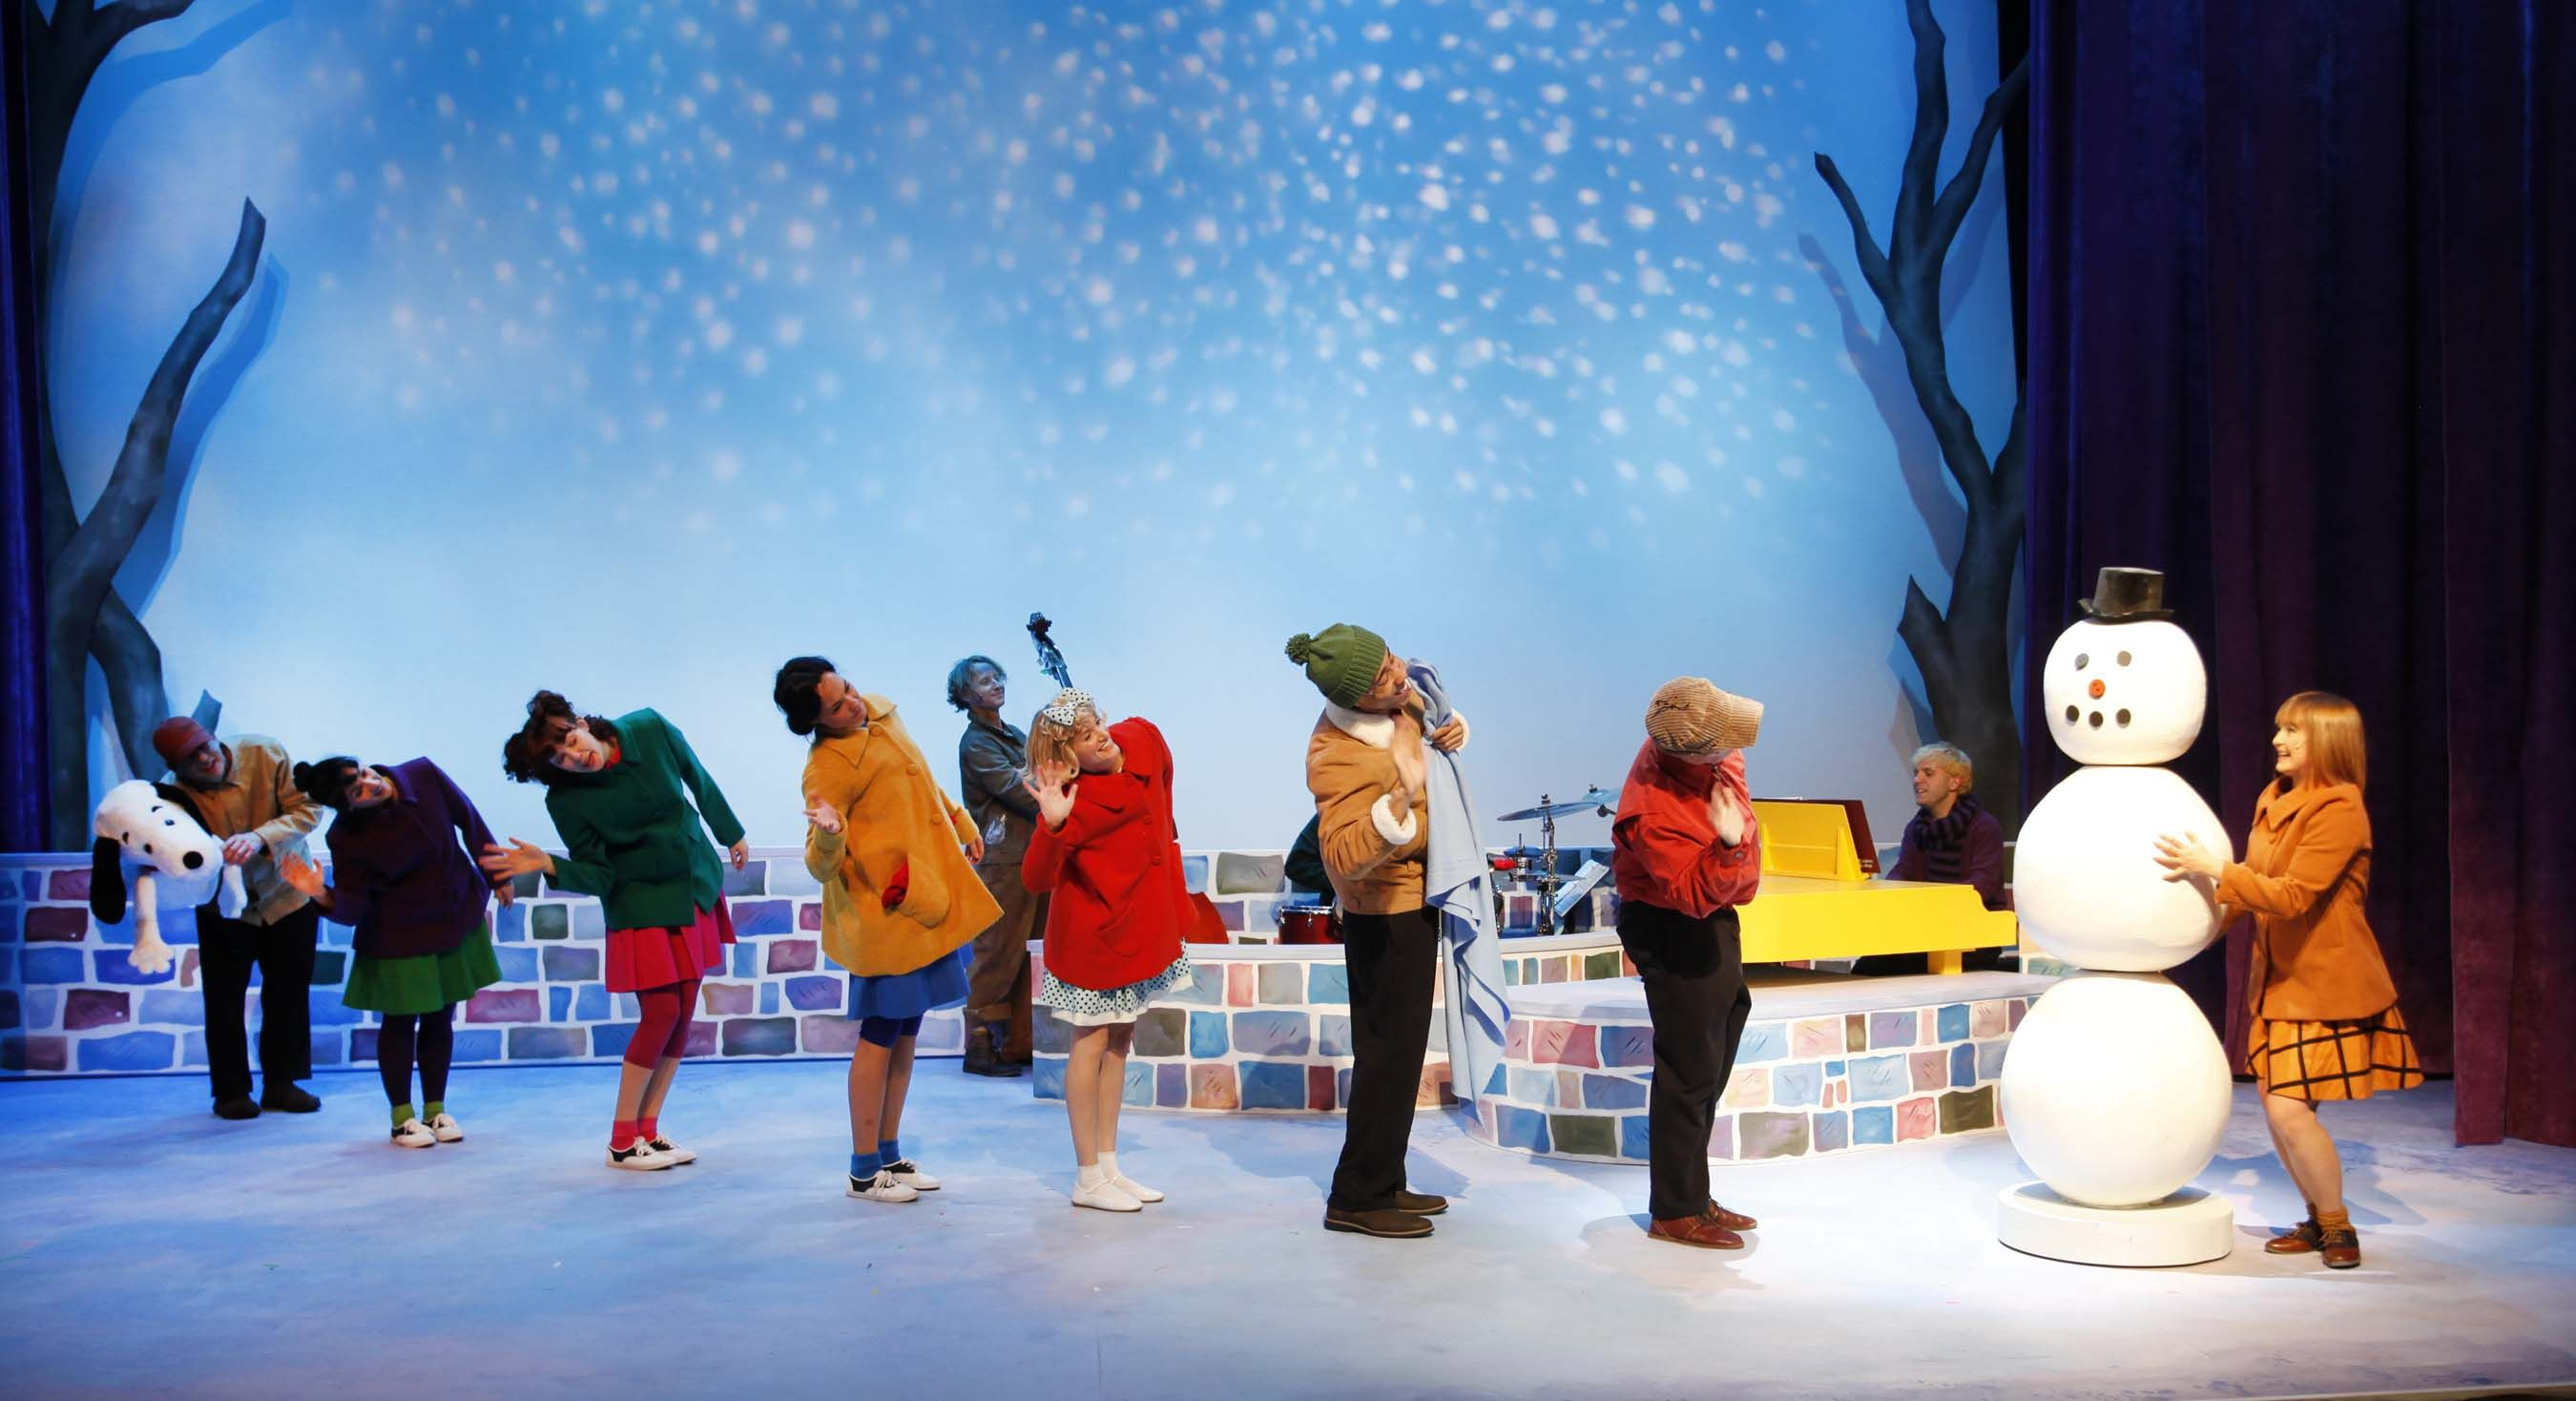 A Charlie Brown Christmas Play.Pin By Kimberly Felton On Charlie Brown Play In 2019